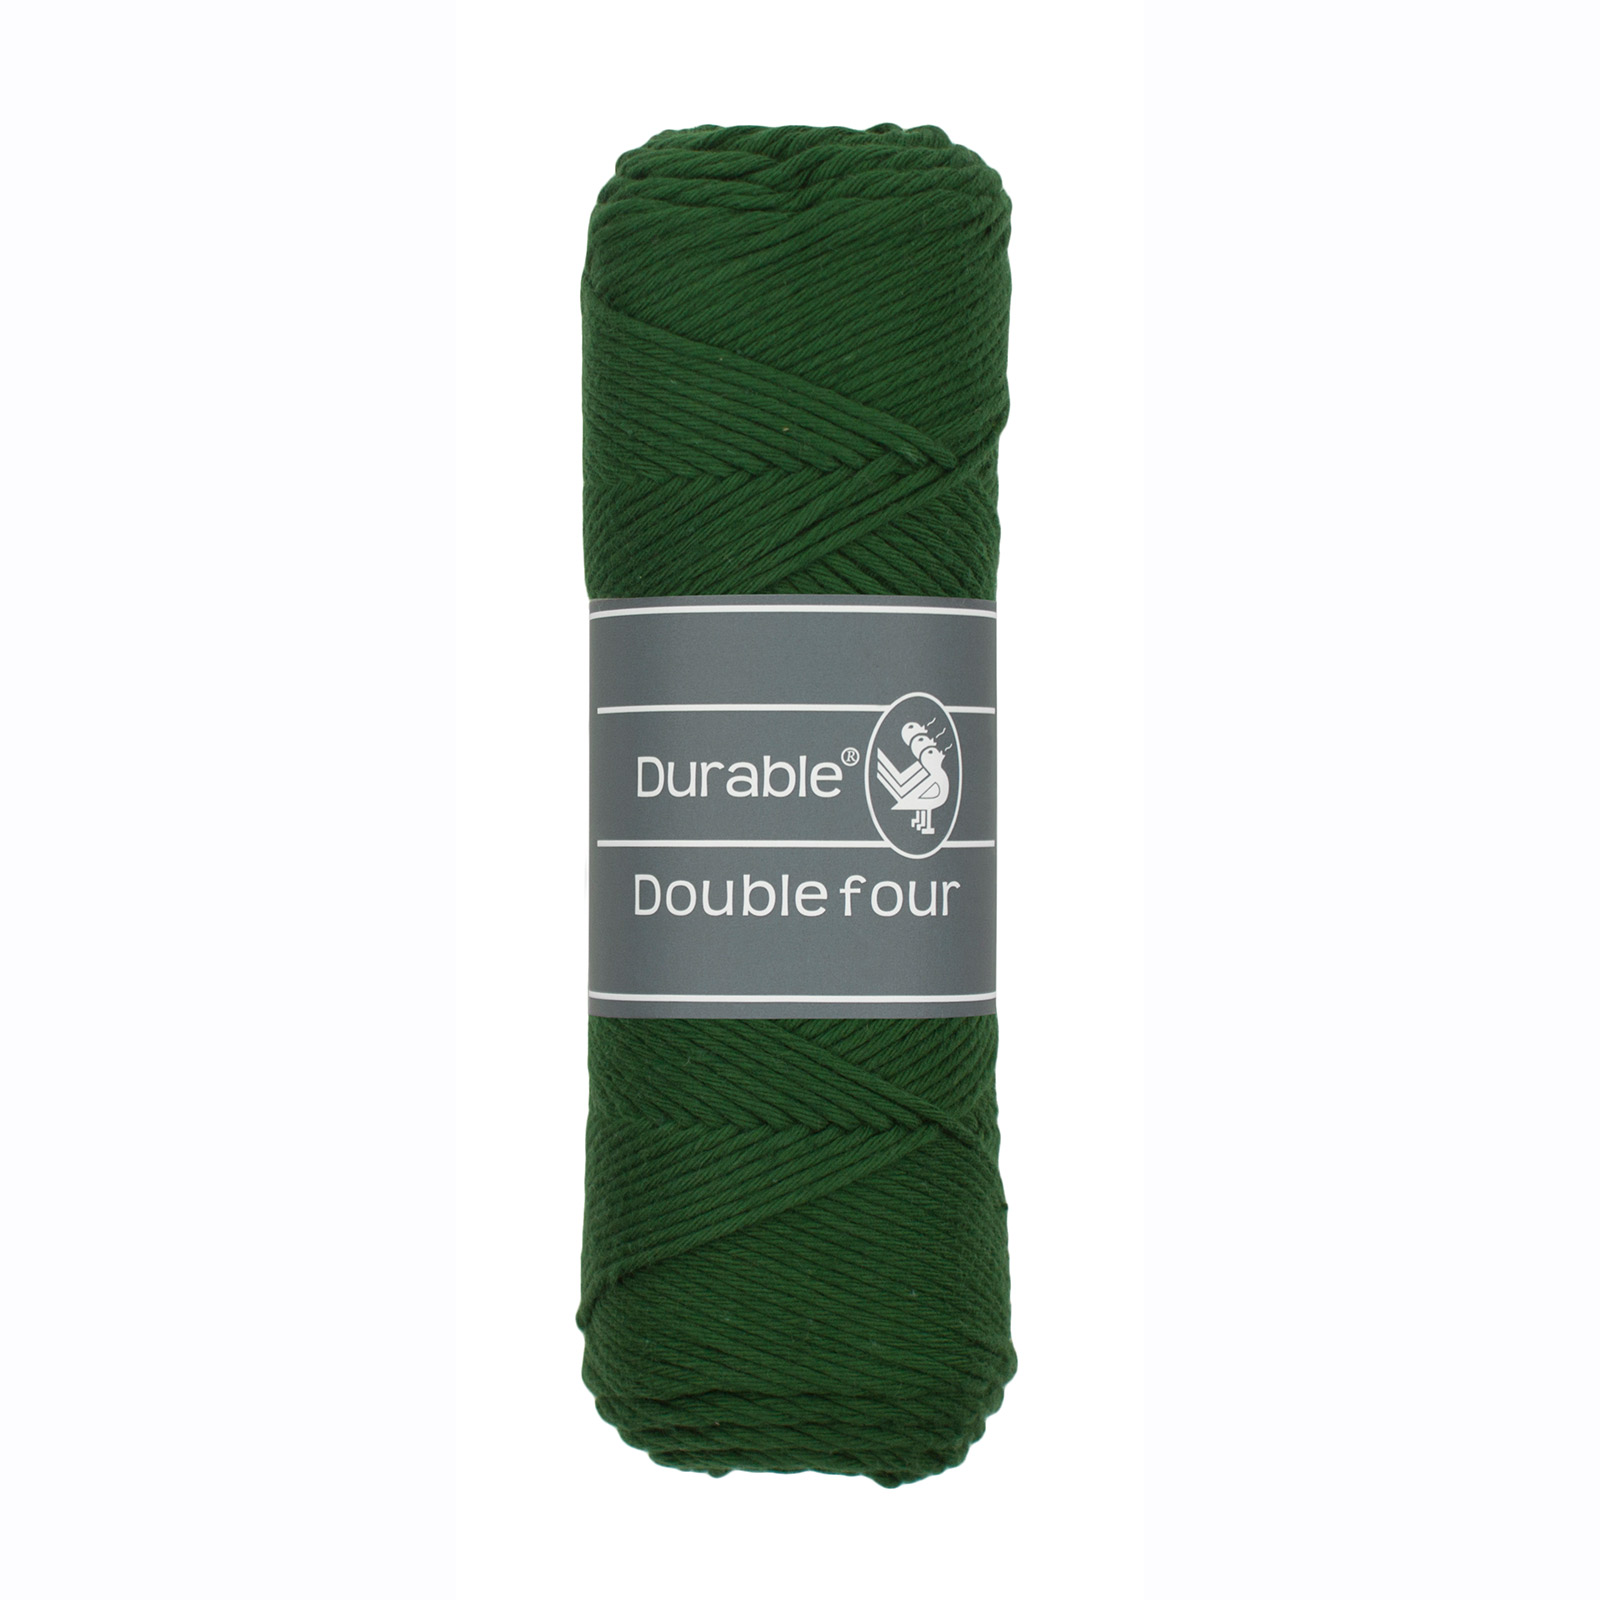 Durable Double Four – 2150 Forest Green